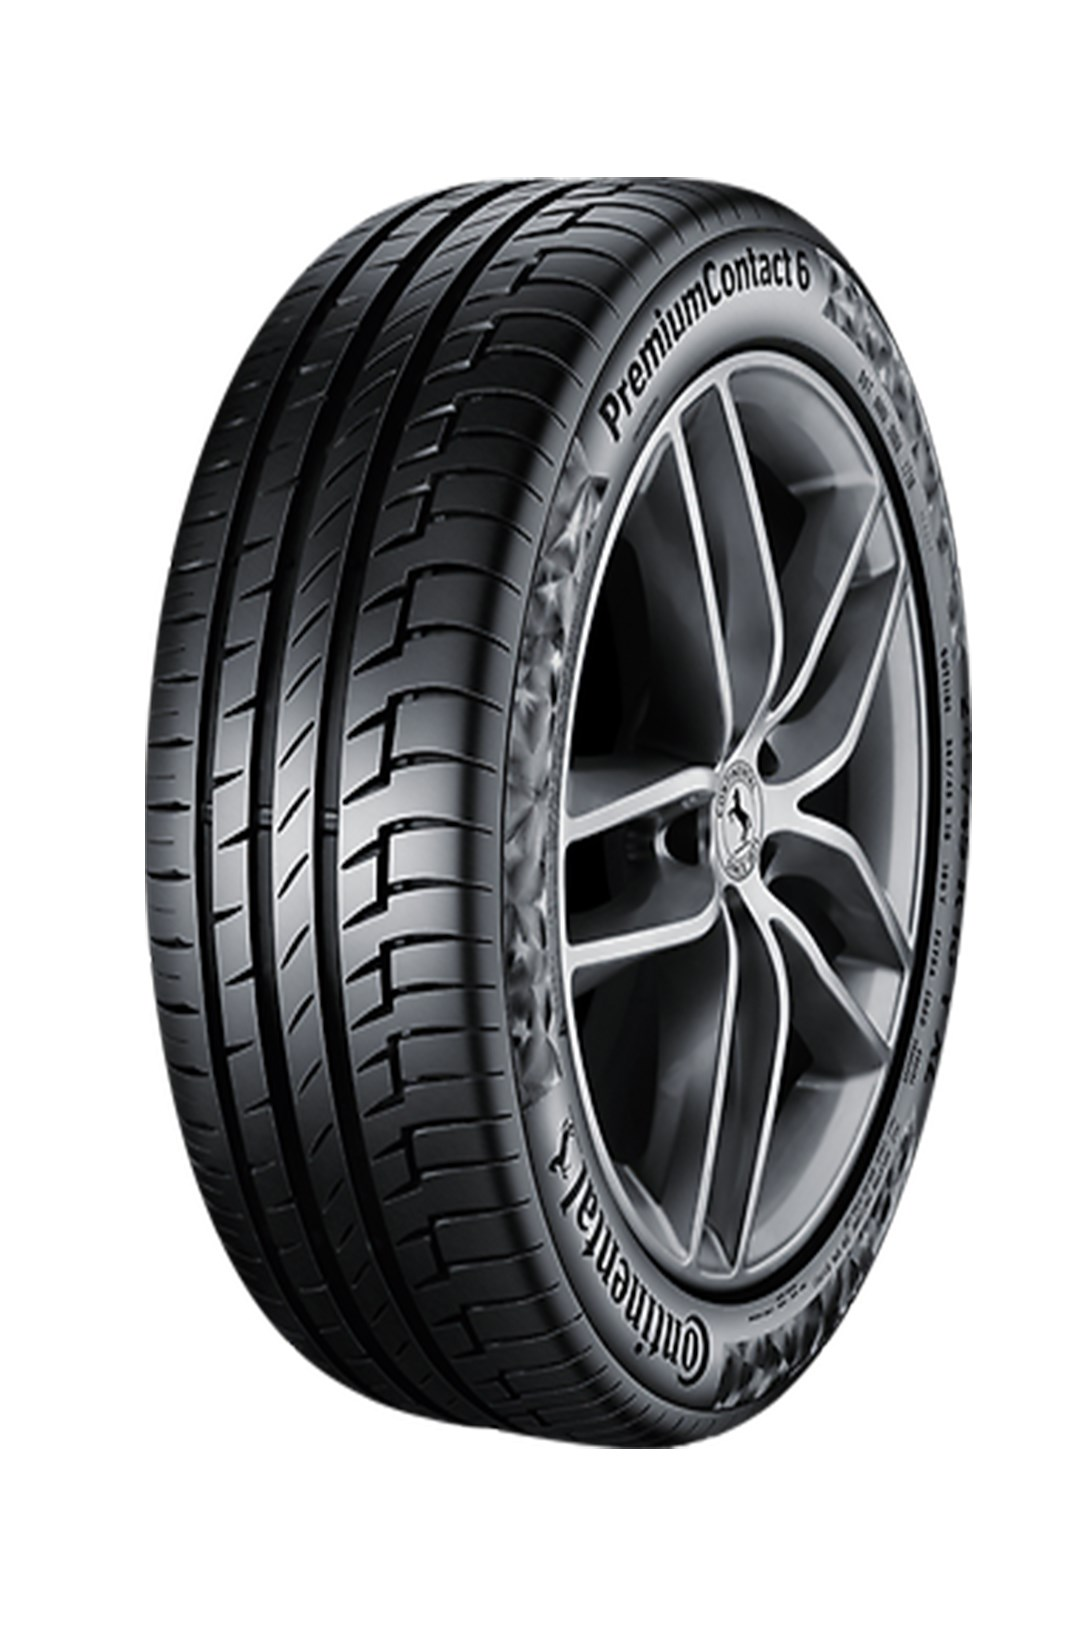 225/50 R18 PREMIUMCONTACT 6* 99W